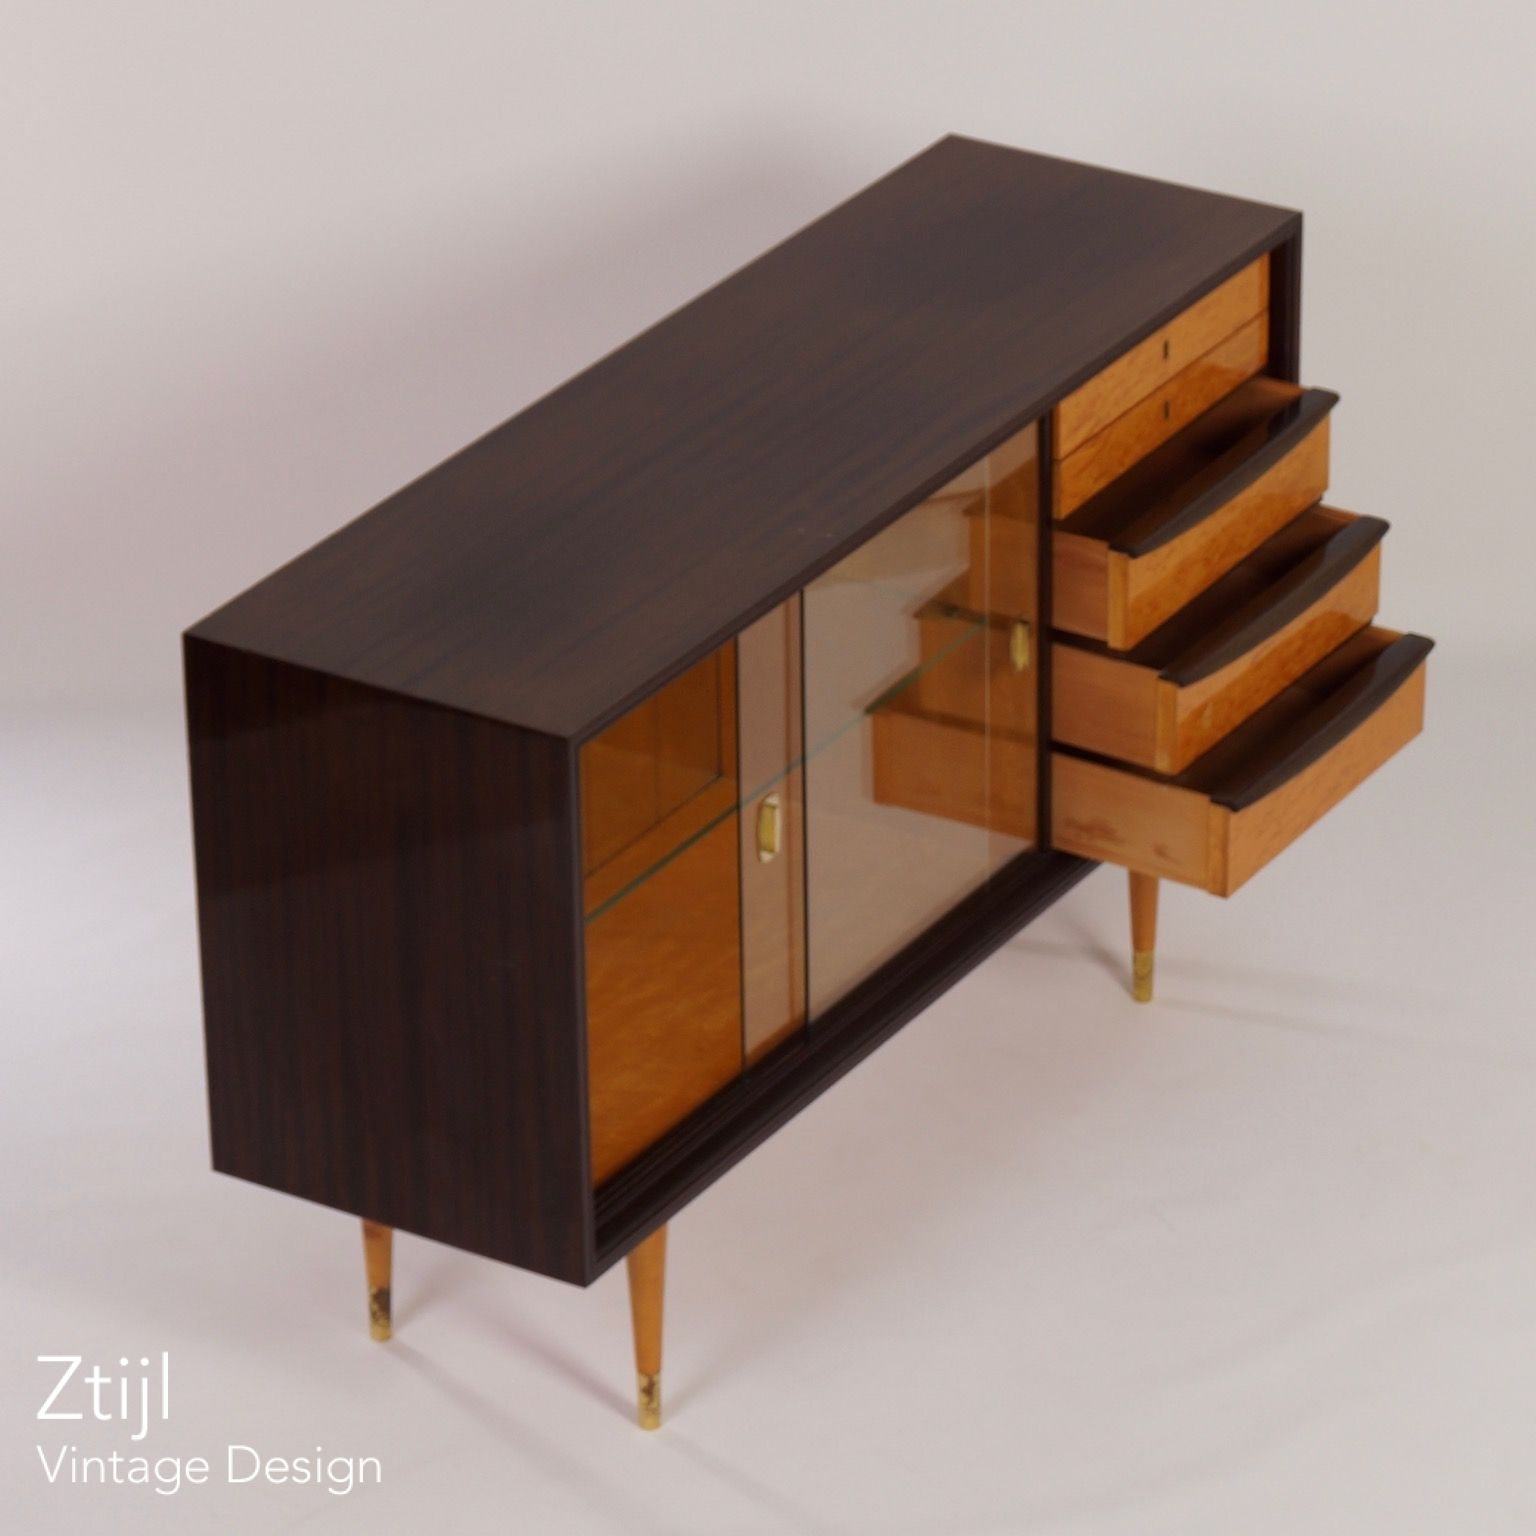 Mahogany Sideboard With Showcase And Brass Details, 1960S - Vintage intended for Vintage 8 Glass Sideboards (Image 15 of 30)